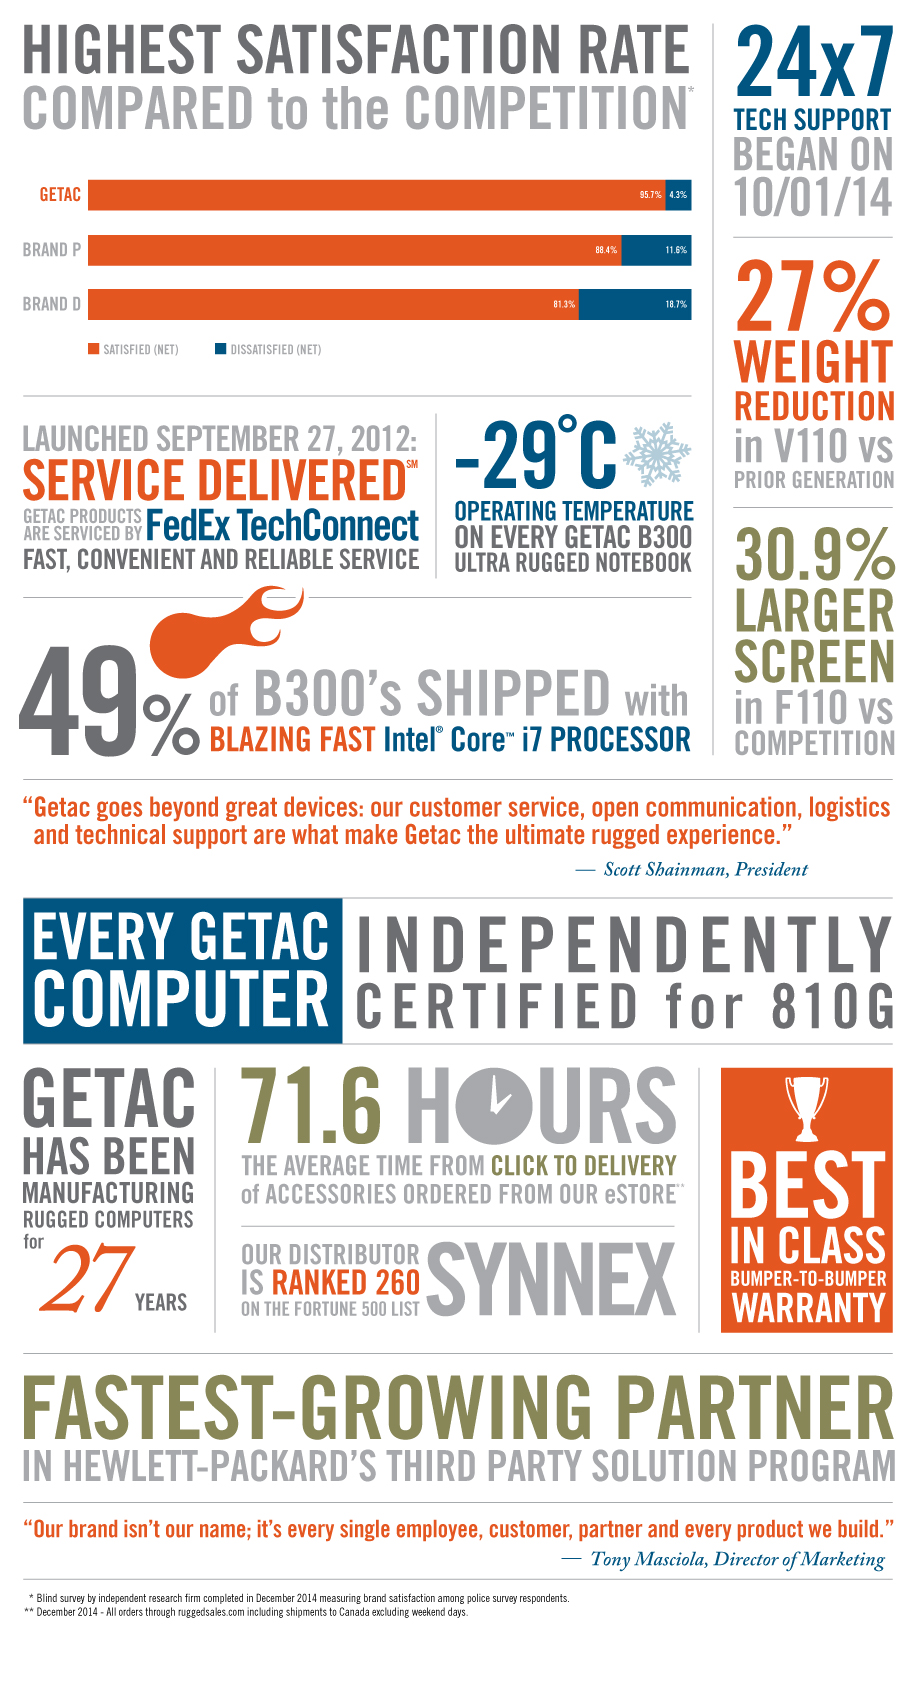 GETAC Ranked Numer One in Customer Satisfaction Infographic